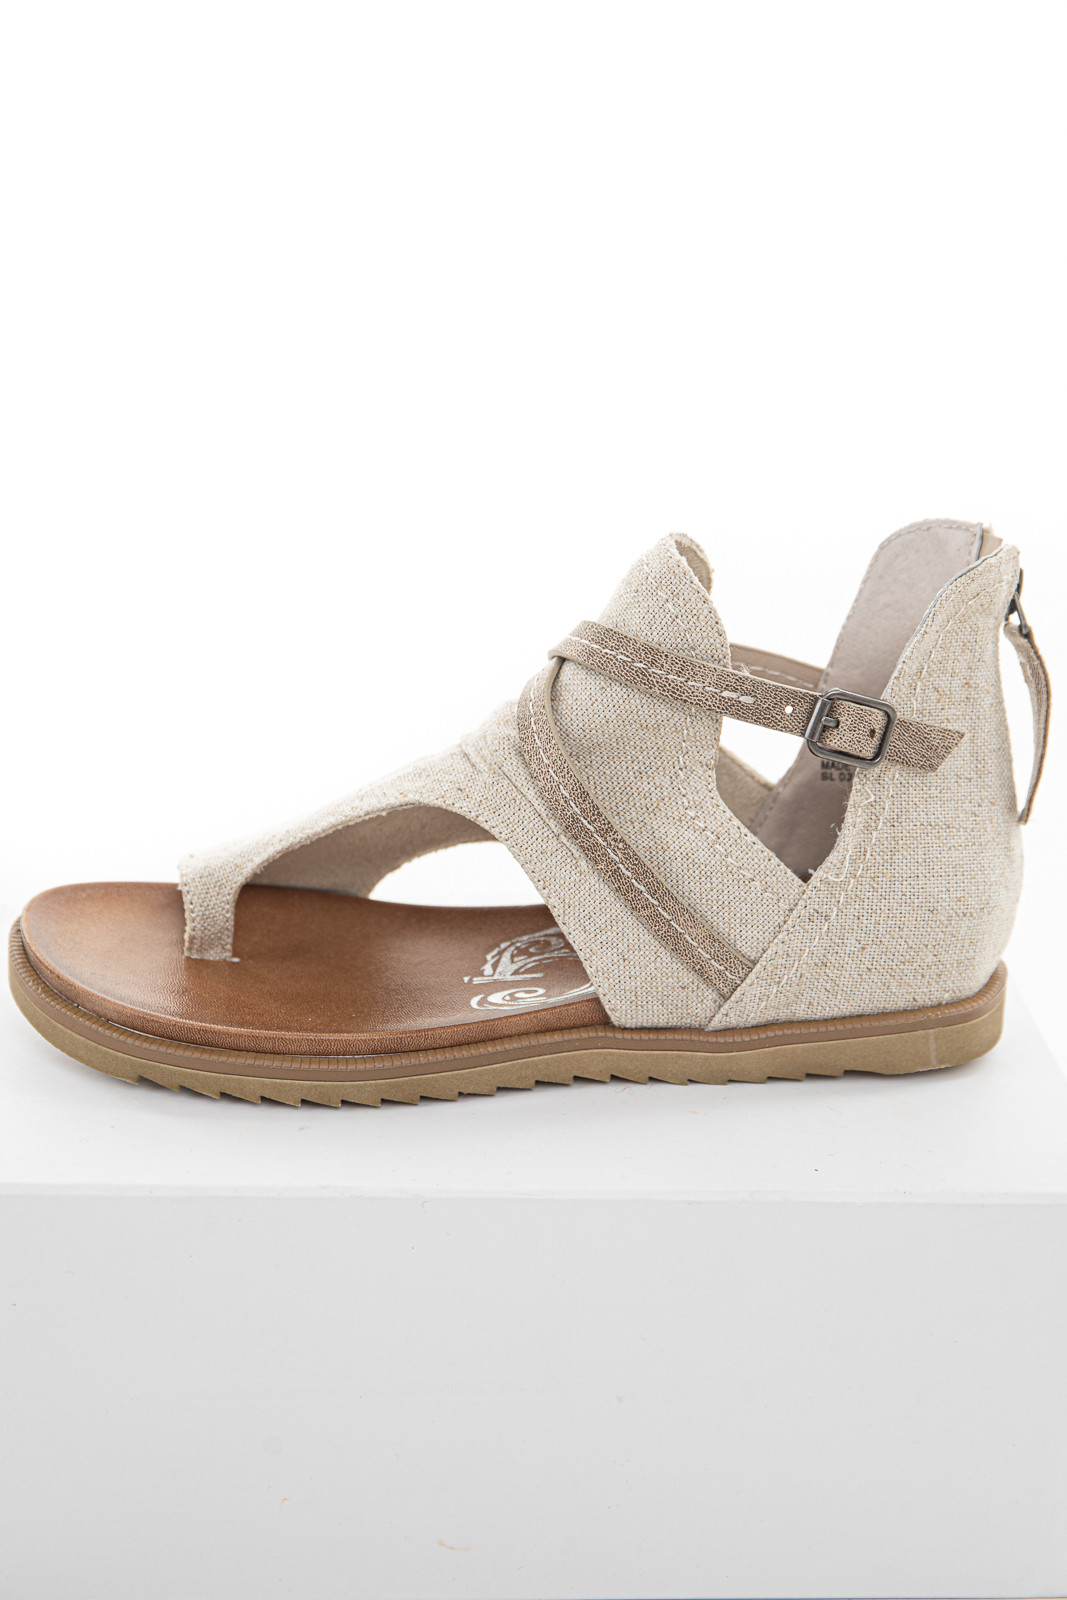 Oatmeal Gladiator Strappy Sandal with Zipper